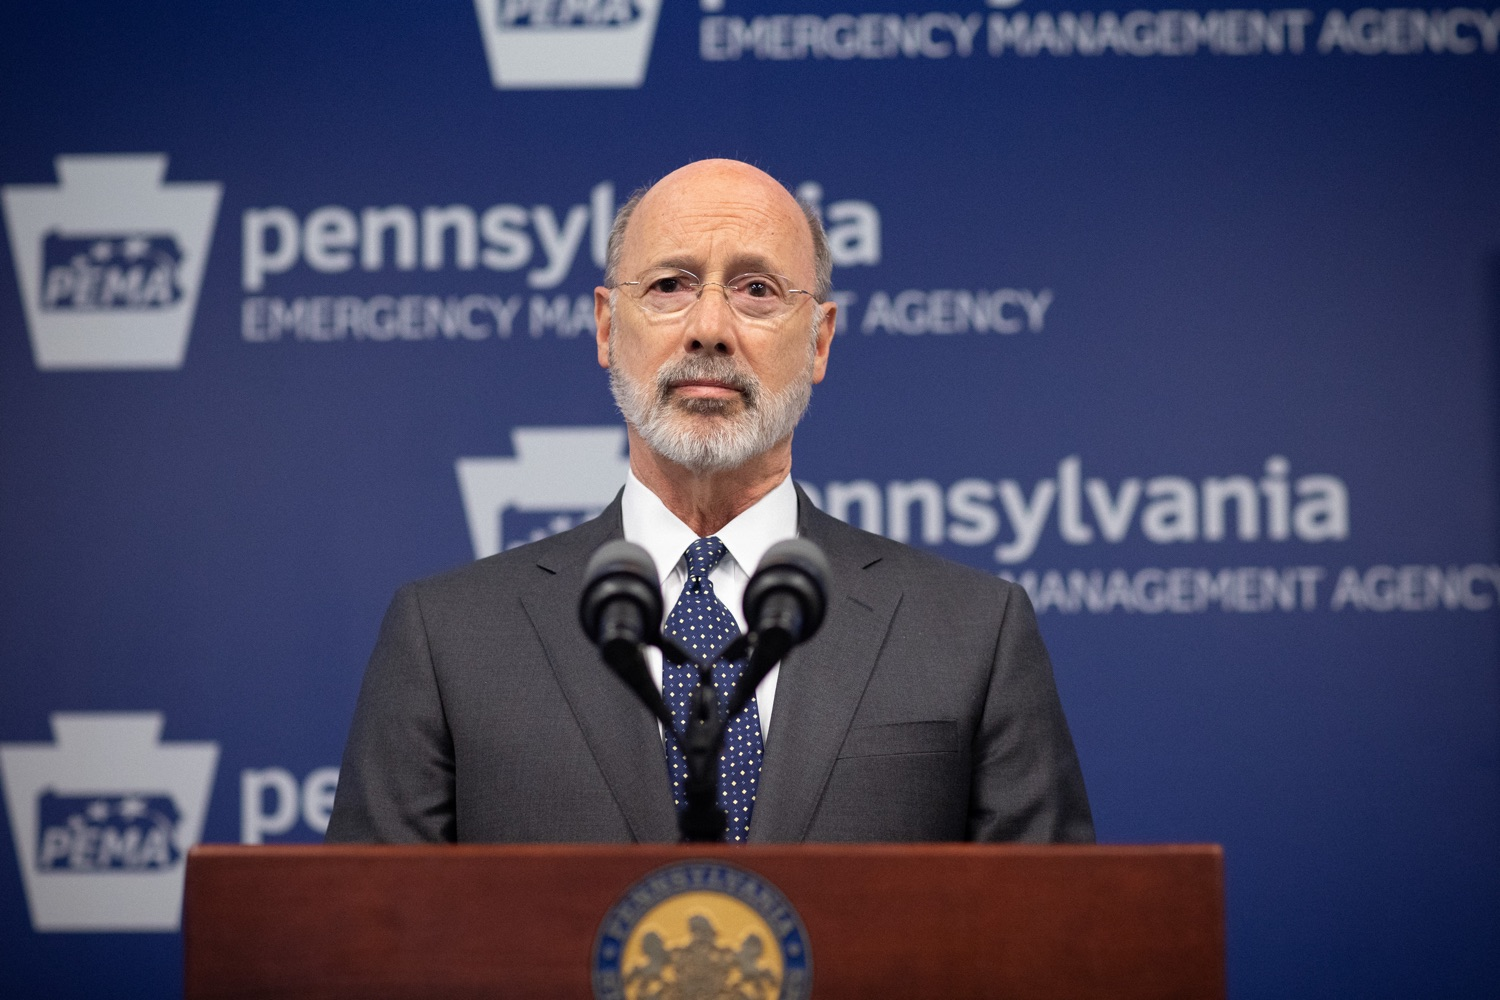 """<a href=""""https://filesource.wostreaming.net/commonwealthofpa/photo/17888_gov_covid19_update_dz_0002.jpg"""" target=""""_blank"""">⇣Download Photo<br></a>Governor Tom Wolf  speaking to reporters. Governor Tom Wolf and Secretary of Health Dr. Rachel Levine provided an update on the coronavirus known as COVID-19 and outline ongoing efforts to mitigate the virus in Pennsylvania. The Department of Health anticipates that there will be more Pennsylvanians who test positive for COVID-19 in the coming days and weeks and it is important for residents to know the commonwealth is prepared and to be prepared themselves. People have a higher chance of testing positive for COVID-19 if they have traveled to a country or state with known community outbreaks or have come in contact with someone who has the virus. The Wolf Administration is working with the health care community across Pennsylvania to keep them informed, consult on patient testing, and ensure they have the resources they need to care for patients. .March 16, 2020  Harrisburg Pa."""